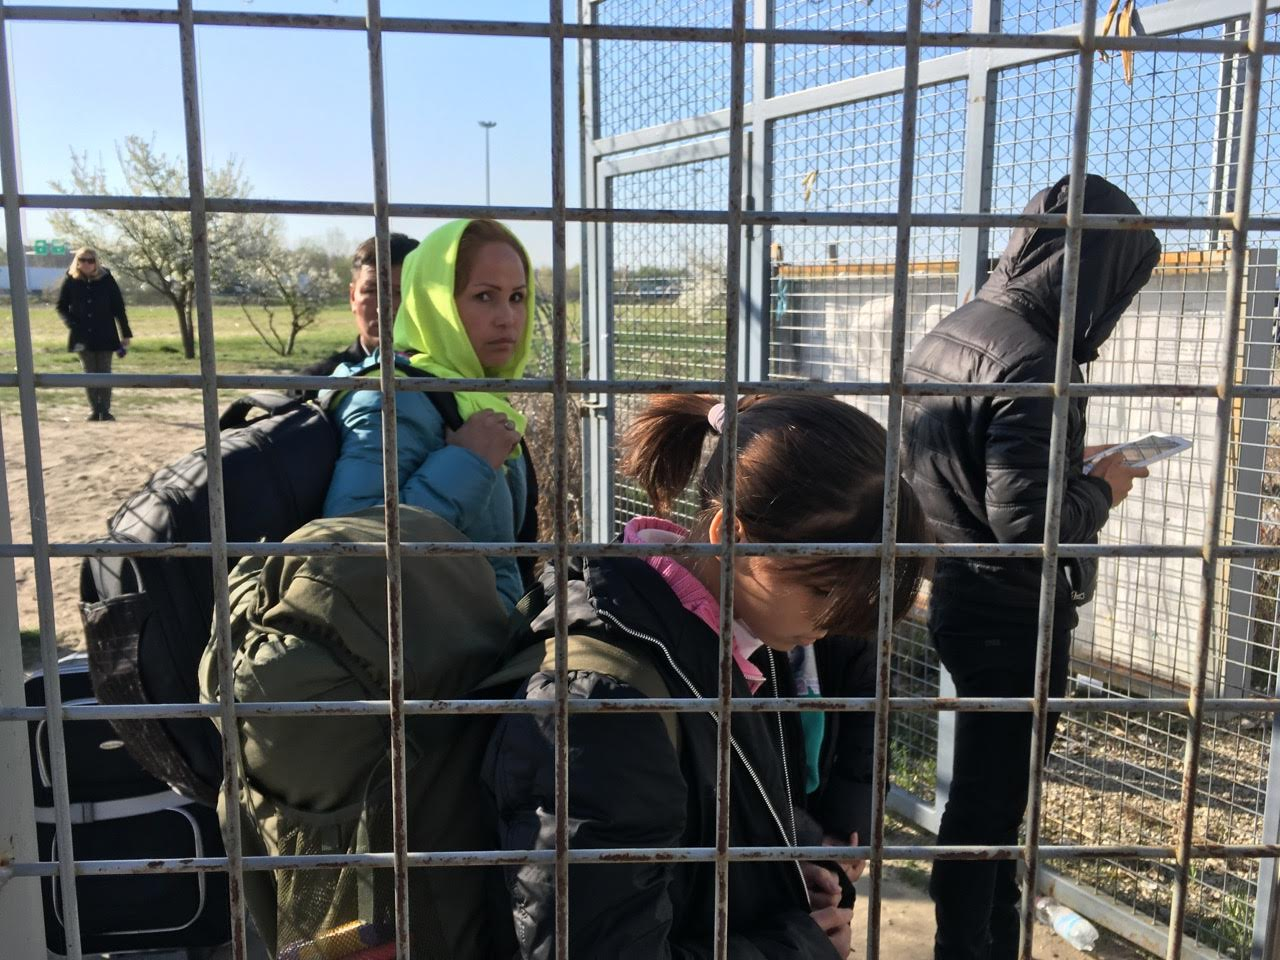 An Afghan family walks toward the Hungary-Serbia border on the day the new law takes effect.  They will live in a detention center until a decision is made on their claim.